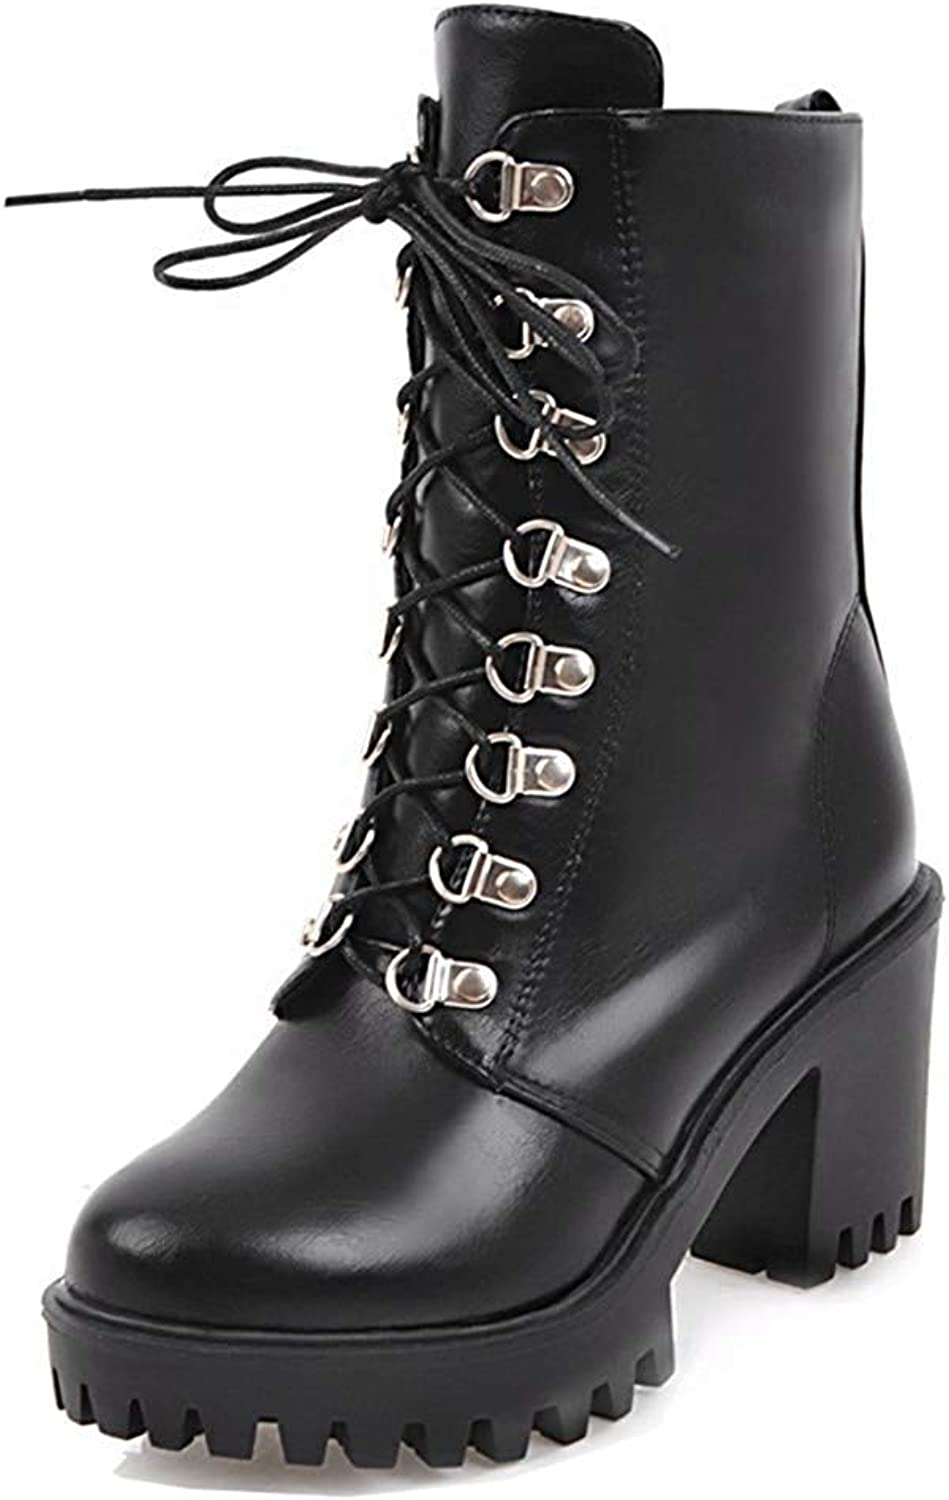 Women's Stylish Round Toe Platform Rider Boots Lace Up High Block Heel Ankle Booties